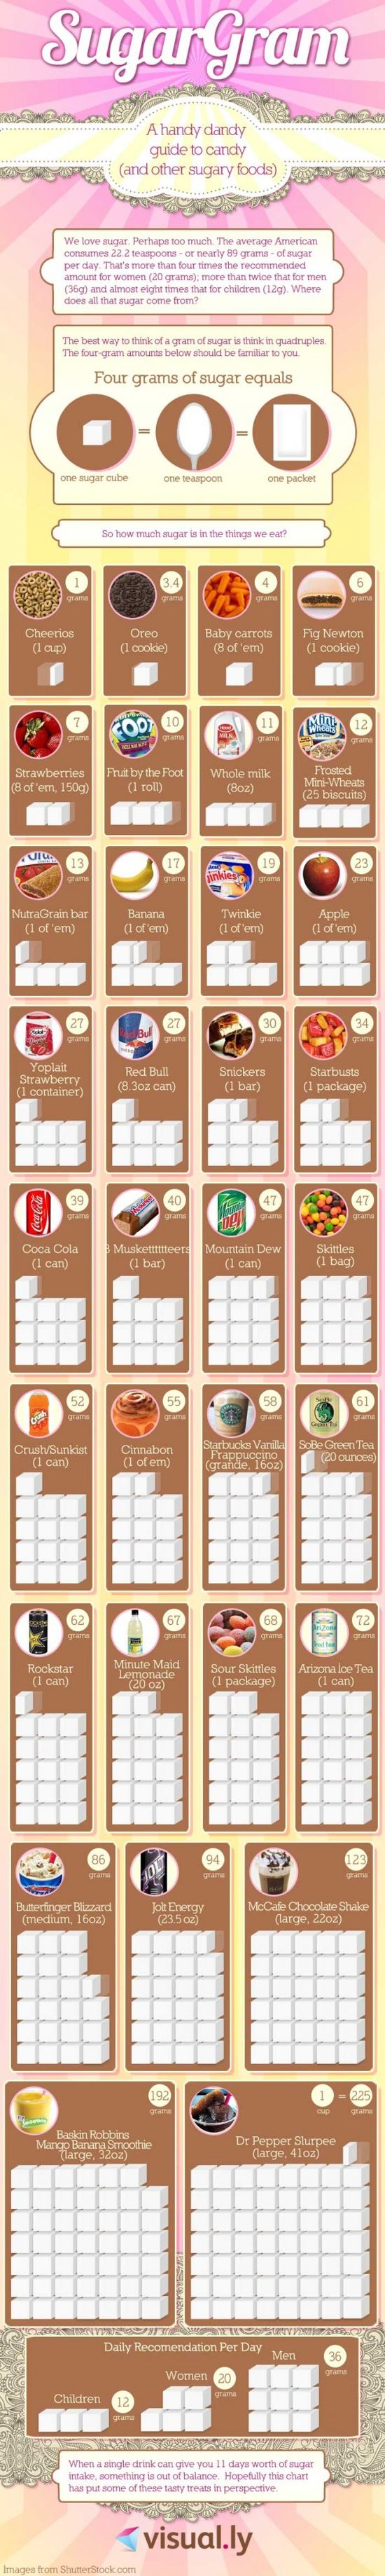 How much sugar is in the things we eat? So glad i completely cut way back prefer #rawsugar #canesugar #naturalsugars #nosugaradded #infographic #suger #health #food